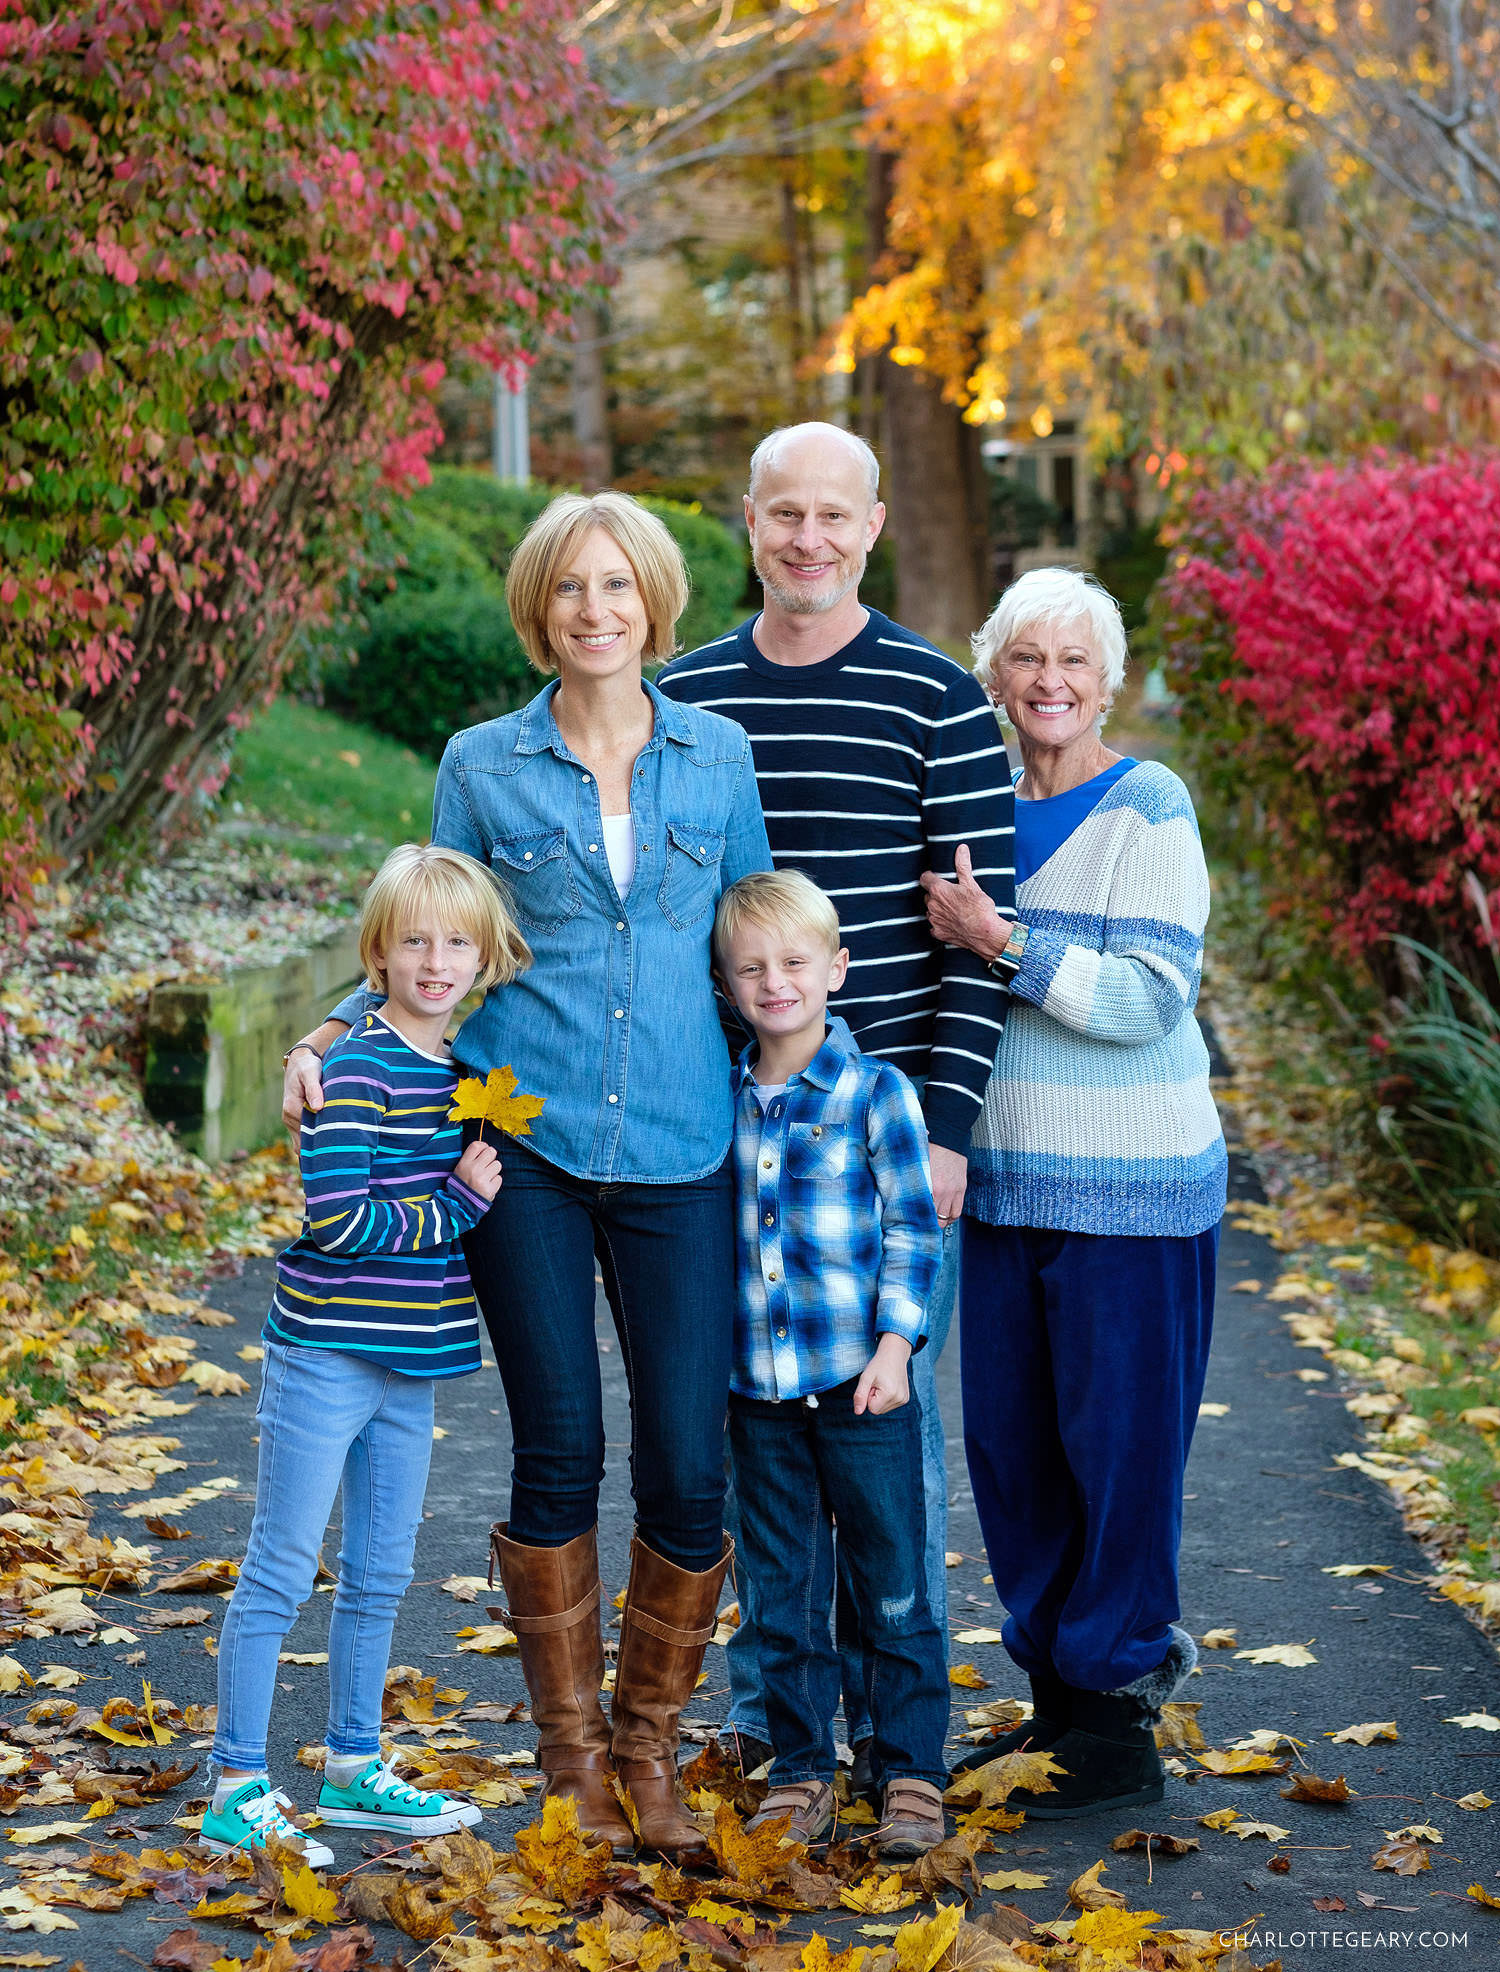 Fall Colors For Family Pictures : colors, family, pictures, Reston, Family, Portraits, Newport:, Gorgeous, Colors, Adorable, Charlotte, Geary, Northern, Virginia, Commercial, Portrait, Photographer